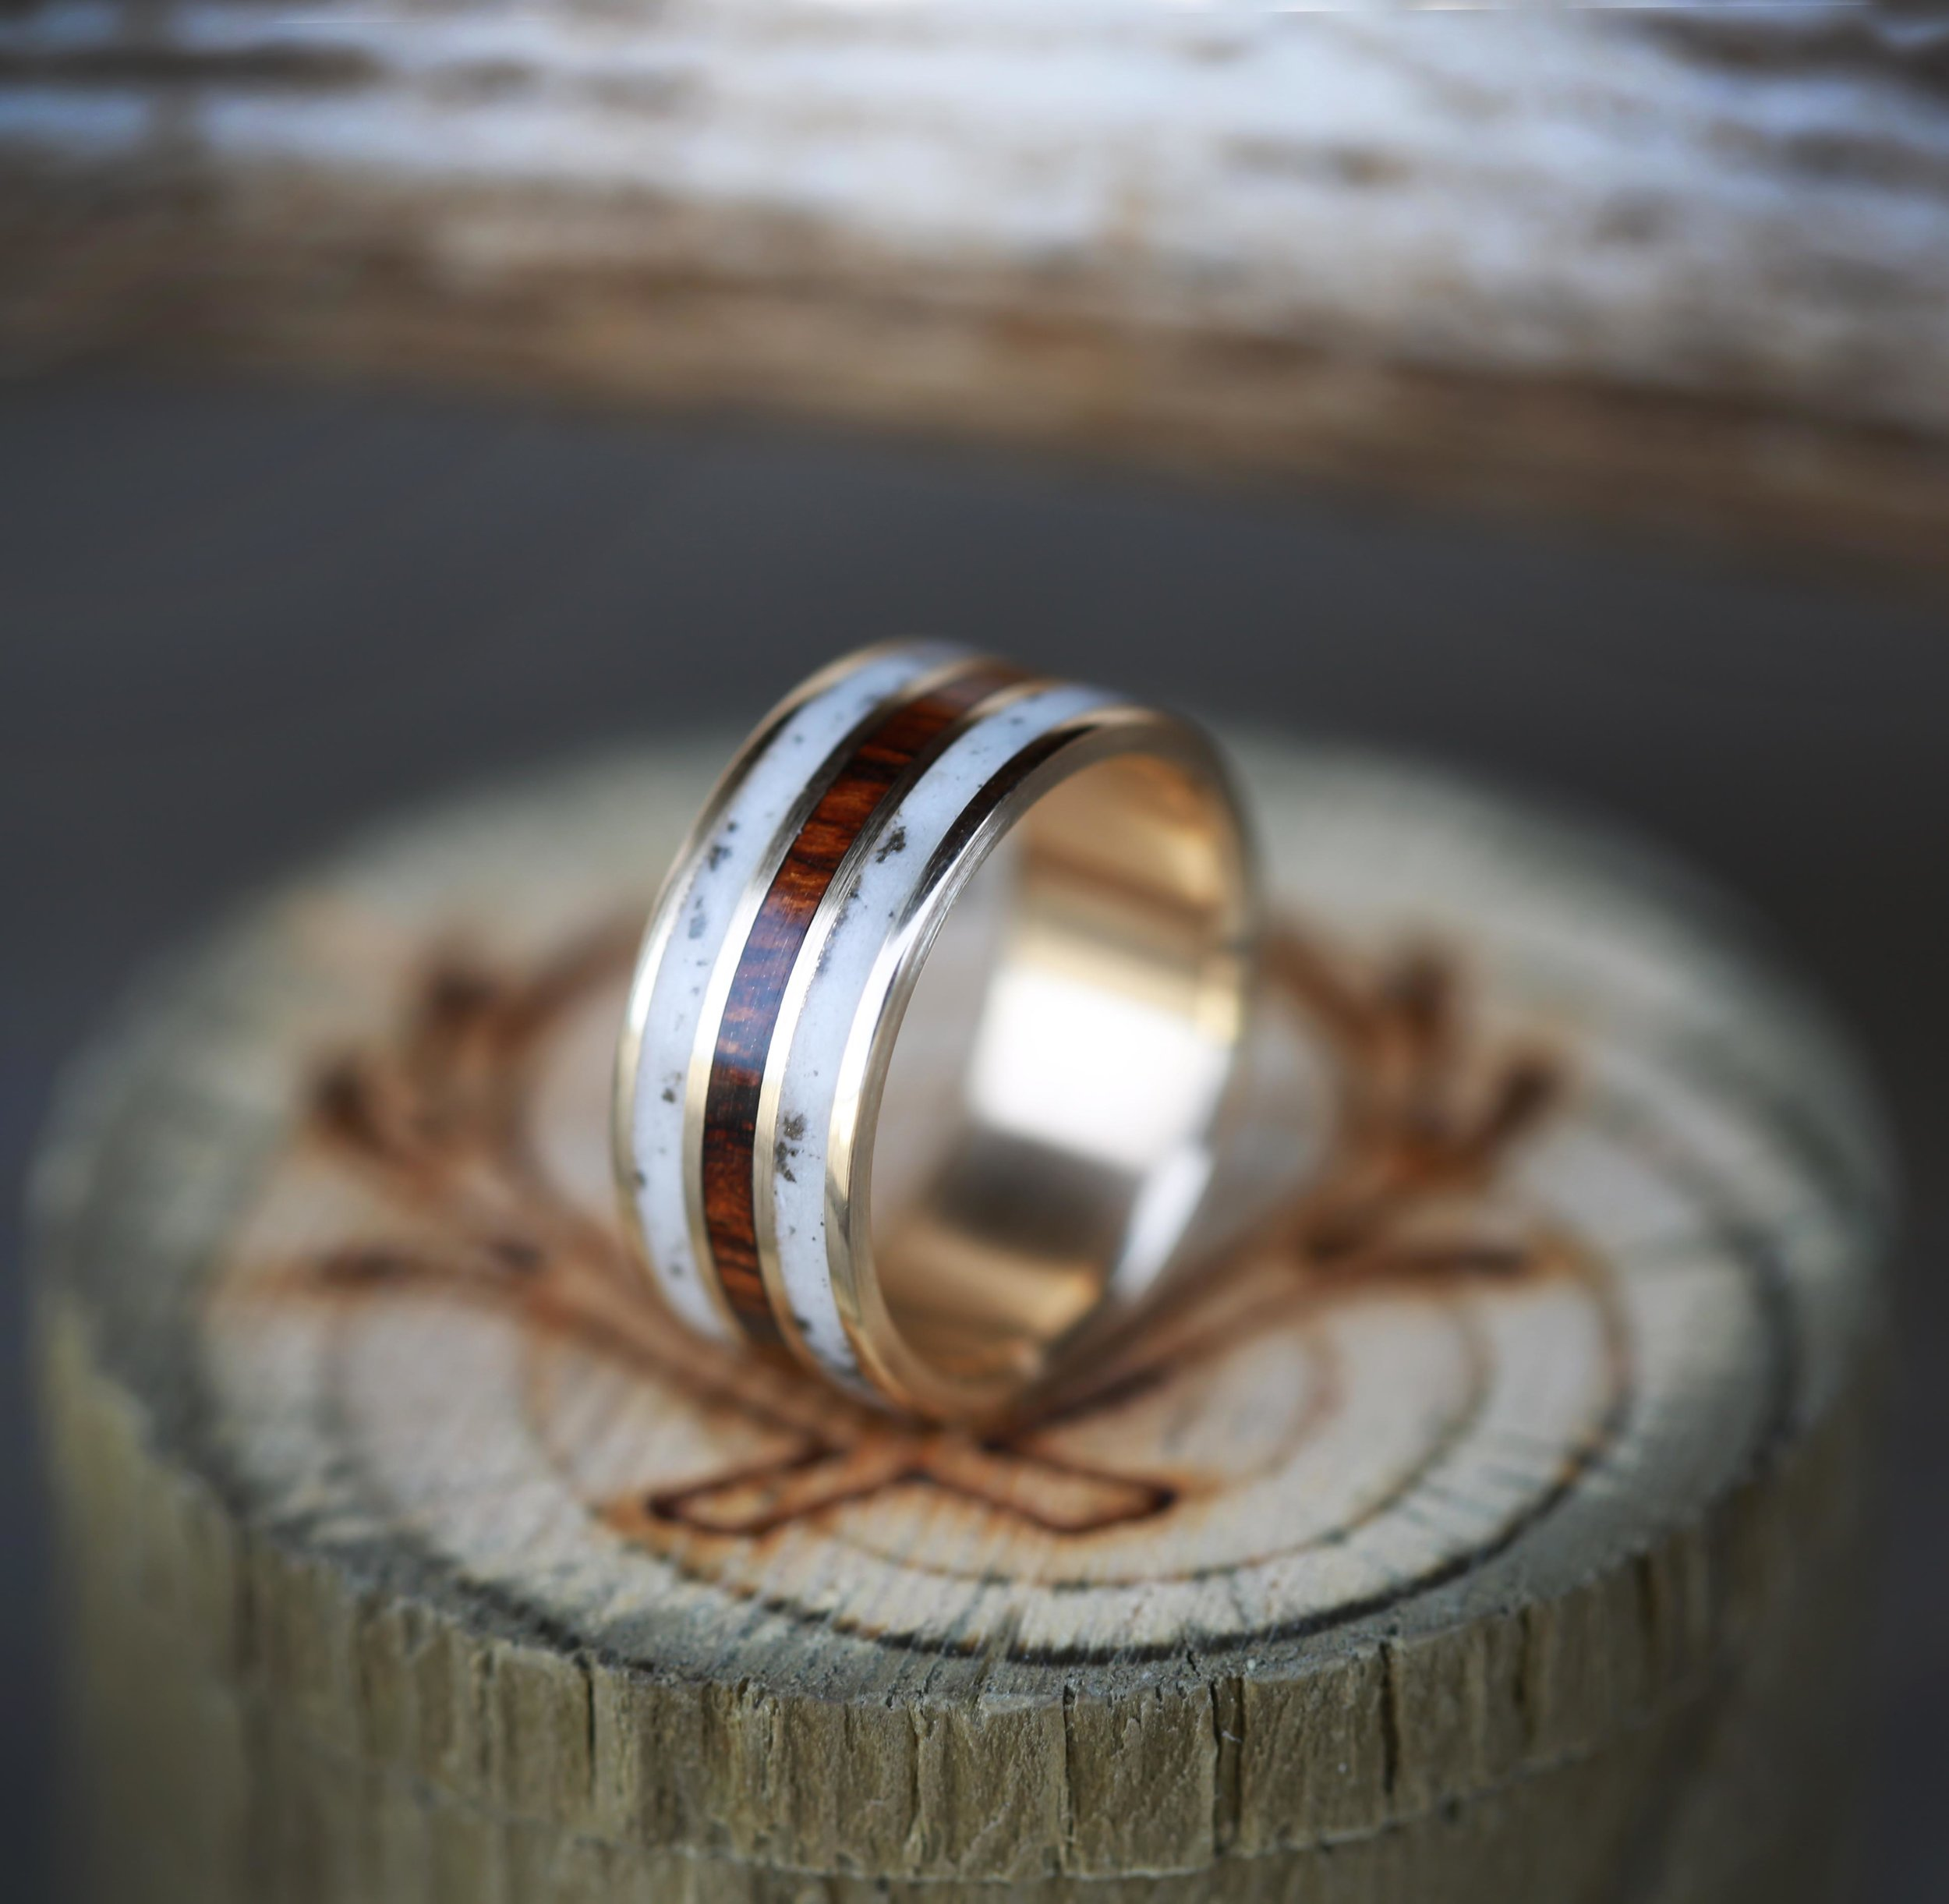 products wedding bands men Ironwood elk antler wedding band with inlays of ironwood elk antler custom made